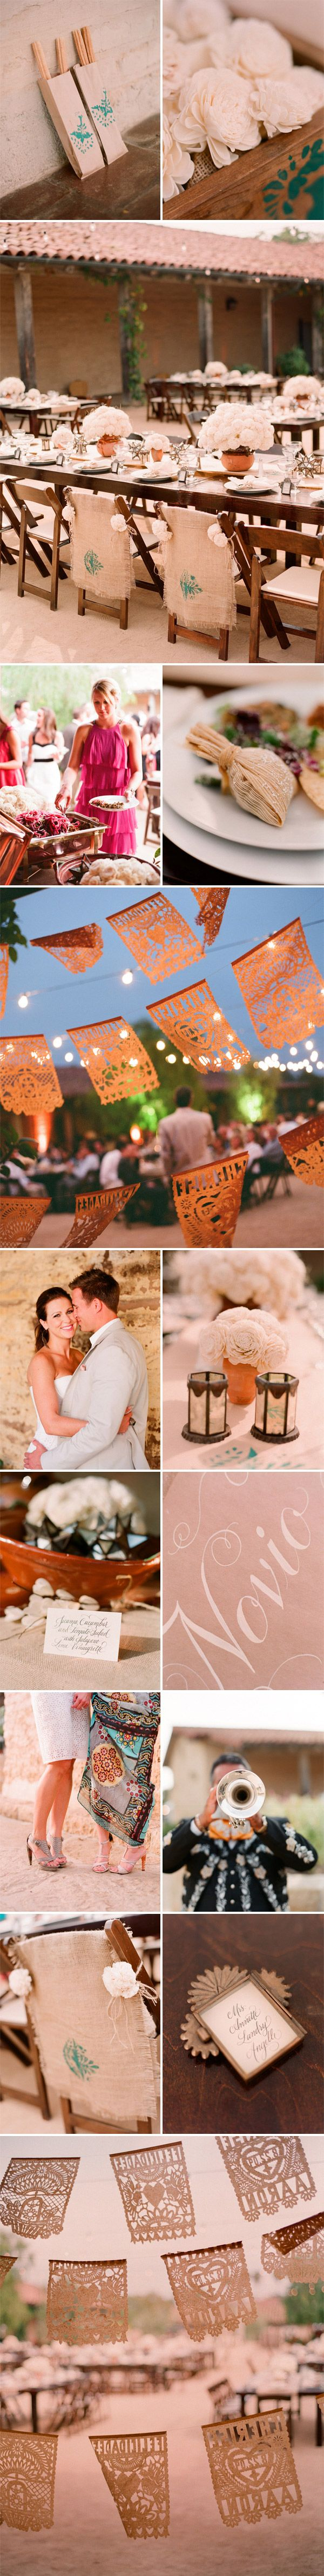 Wedding And Event Planning And Design - Hip Hacienda